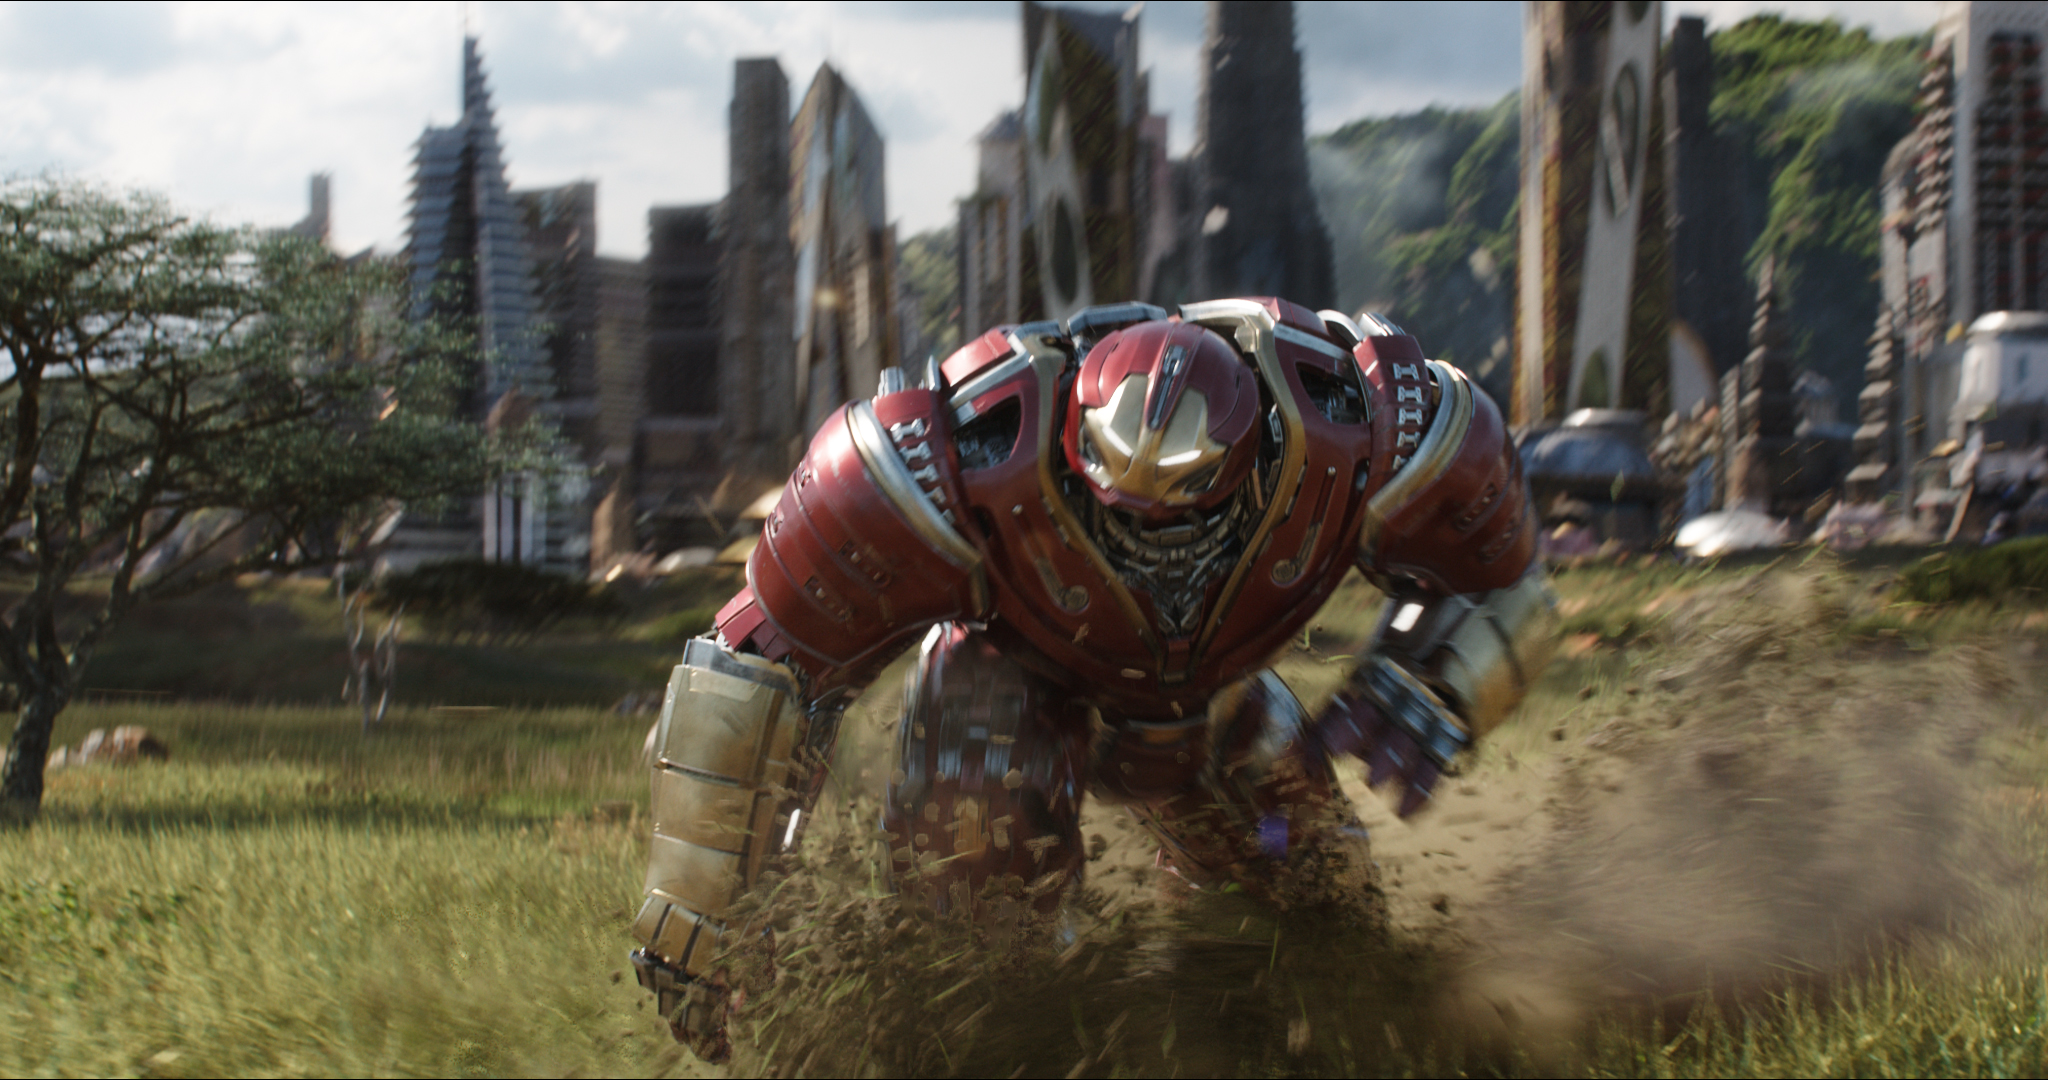 750x1334 Iron Hulkbuster In Avengers Infinity War 2018 Iphone 6